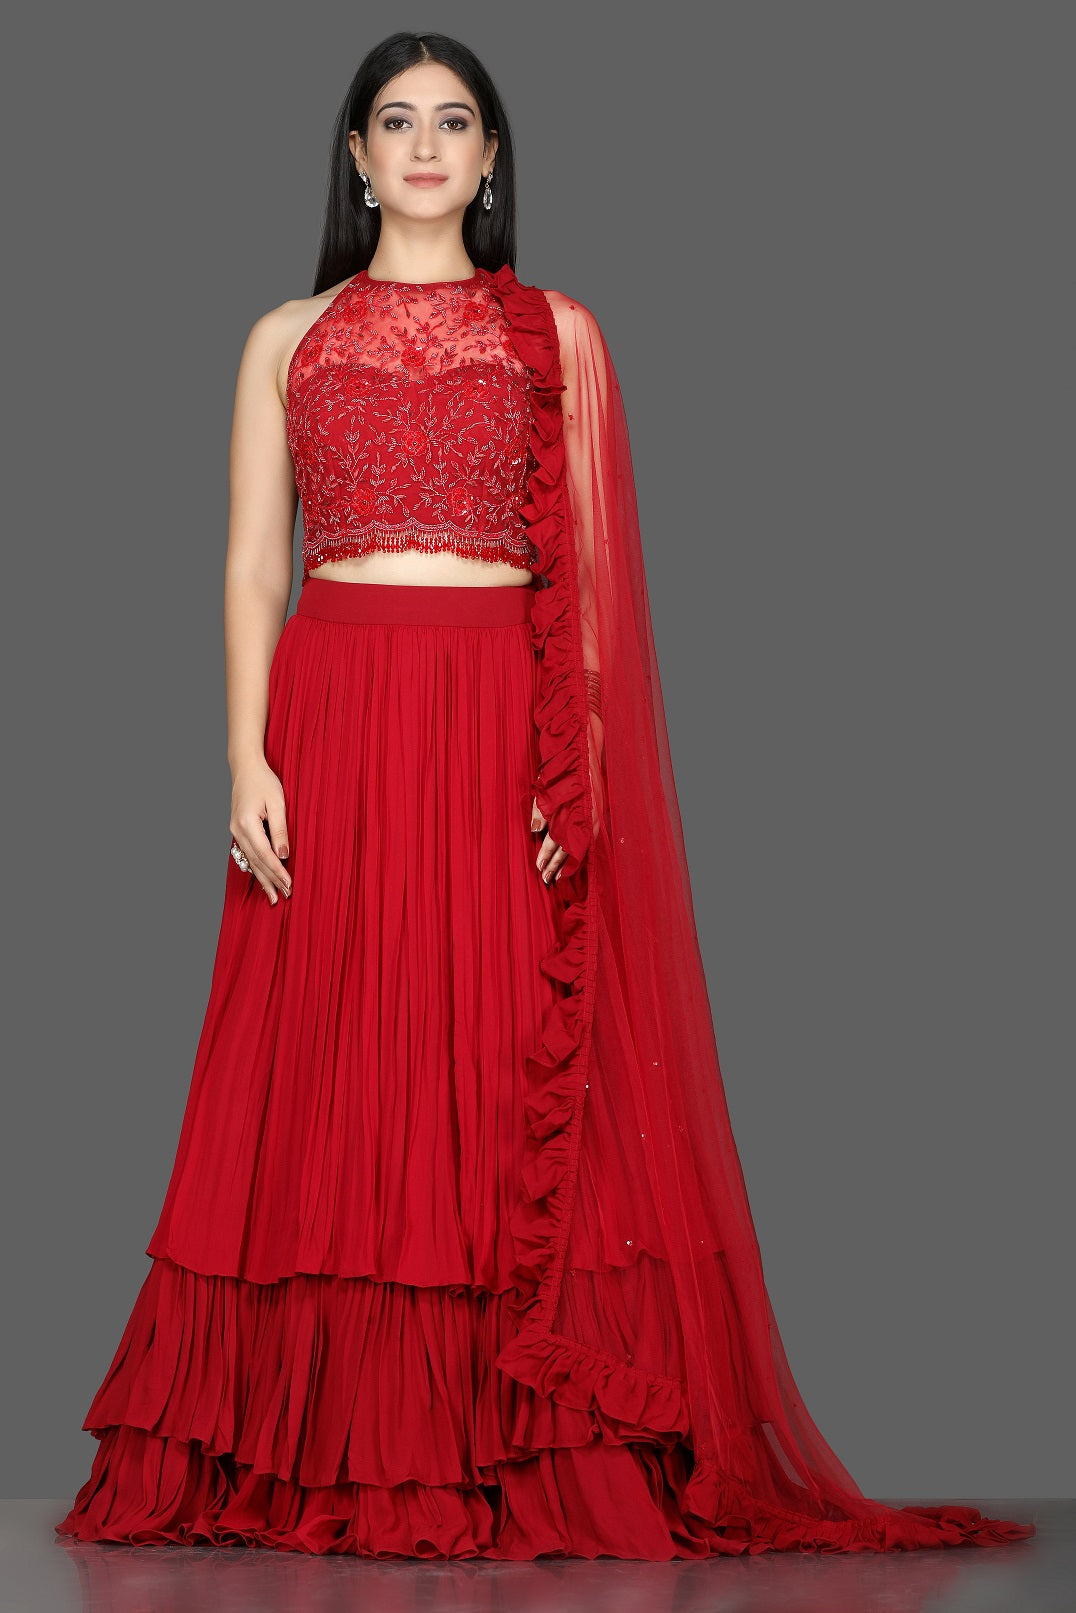 Buy gorgeous red embroidered layered georgette lehenga online in USA with ruffle dupatta. Flaunt ethnic fashion with exquisite designer lehenga, Indian wedding dresses from Pure Elegance Indian fashion boutique in USA.-full view